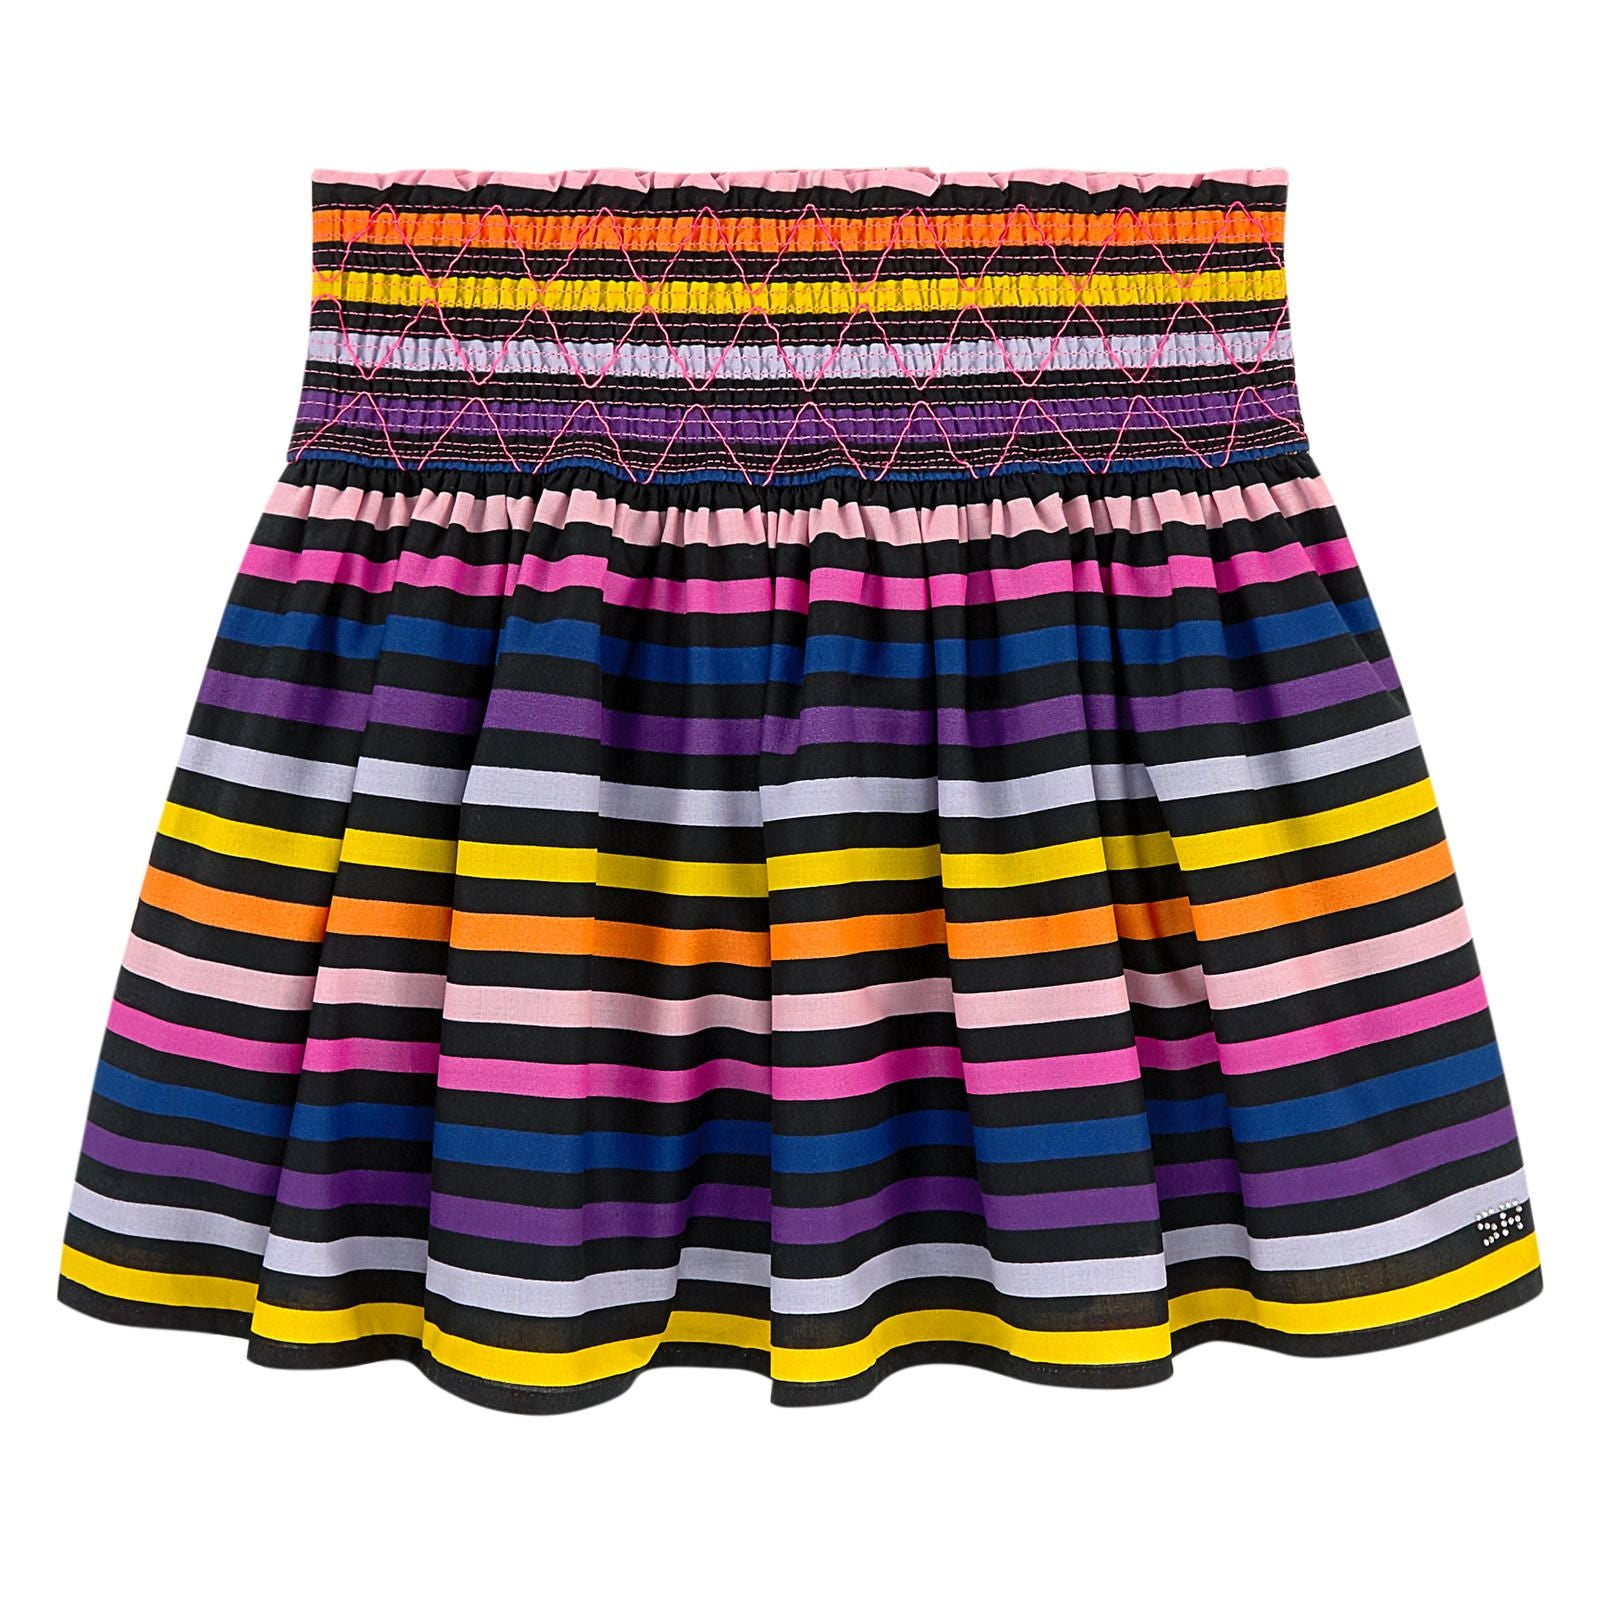 Sonia Rykiel Paris Multicoloured Cotton Skirt